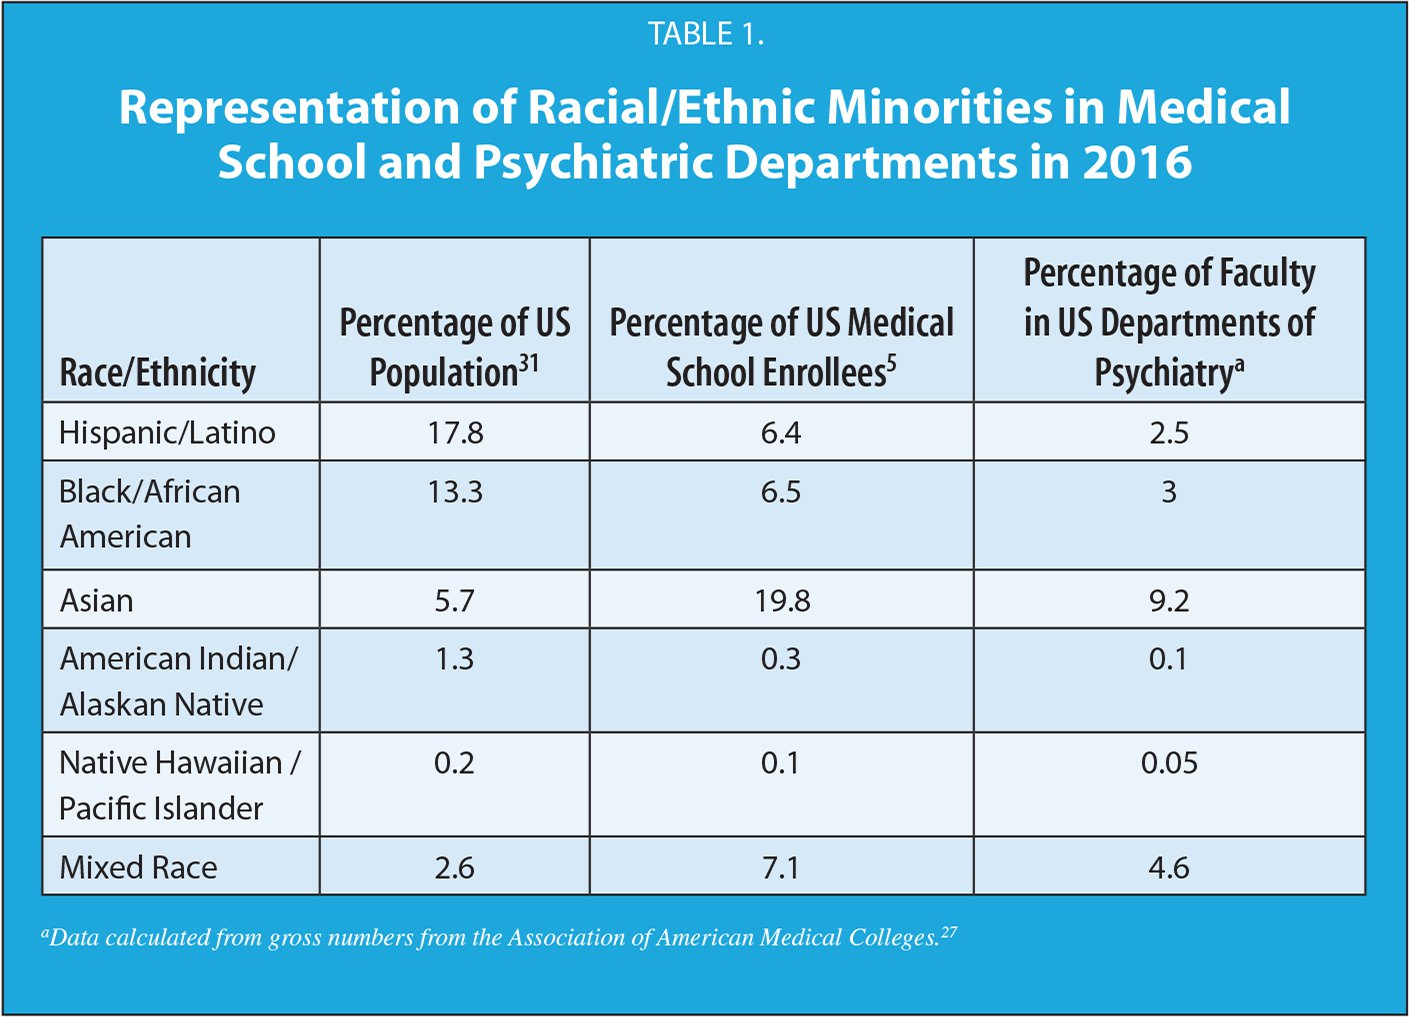 Representation of Racial/Ethnic Minorities in Medical School and Psychiatric Departments in 2016